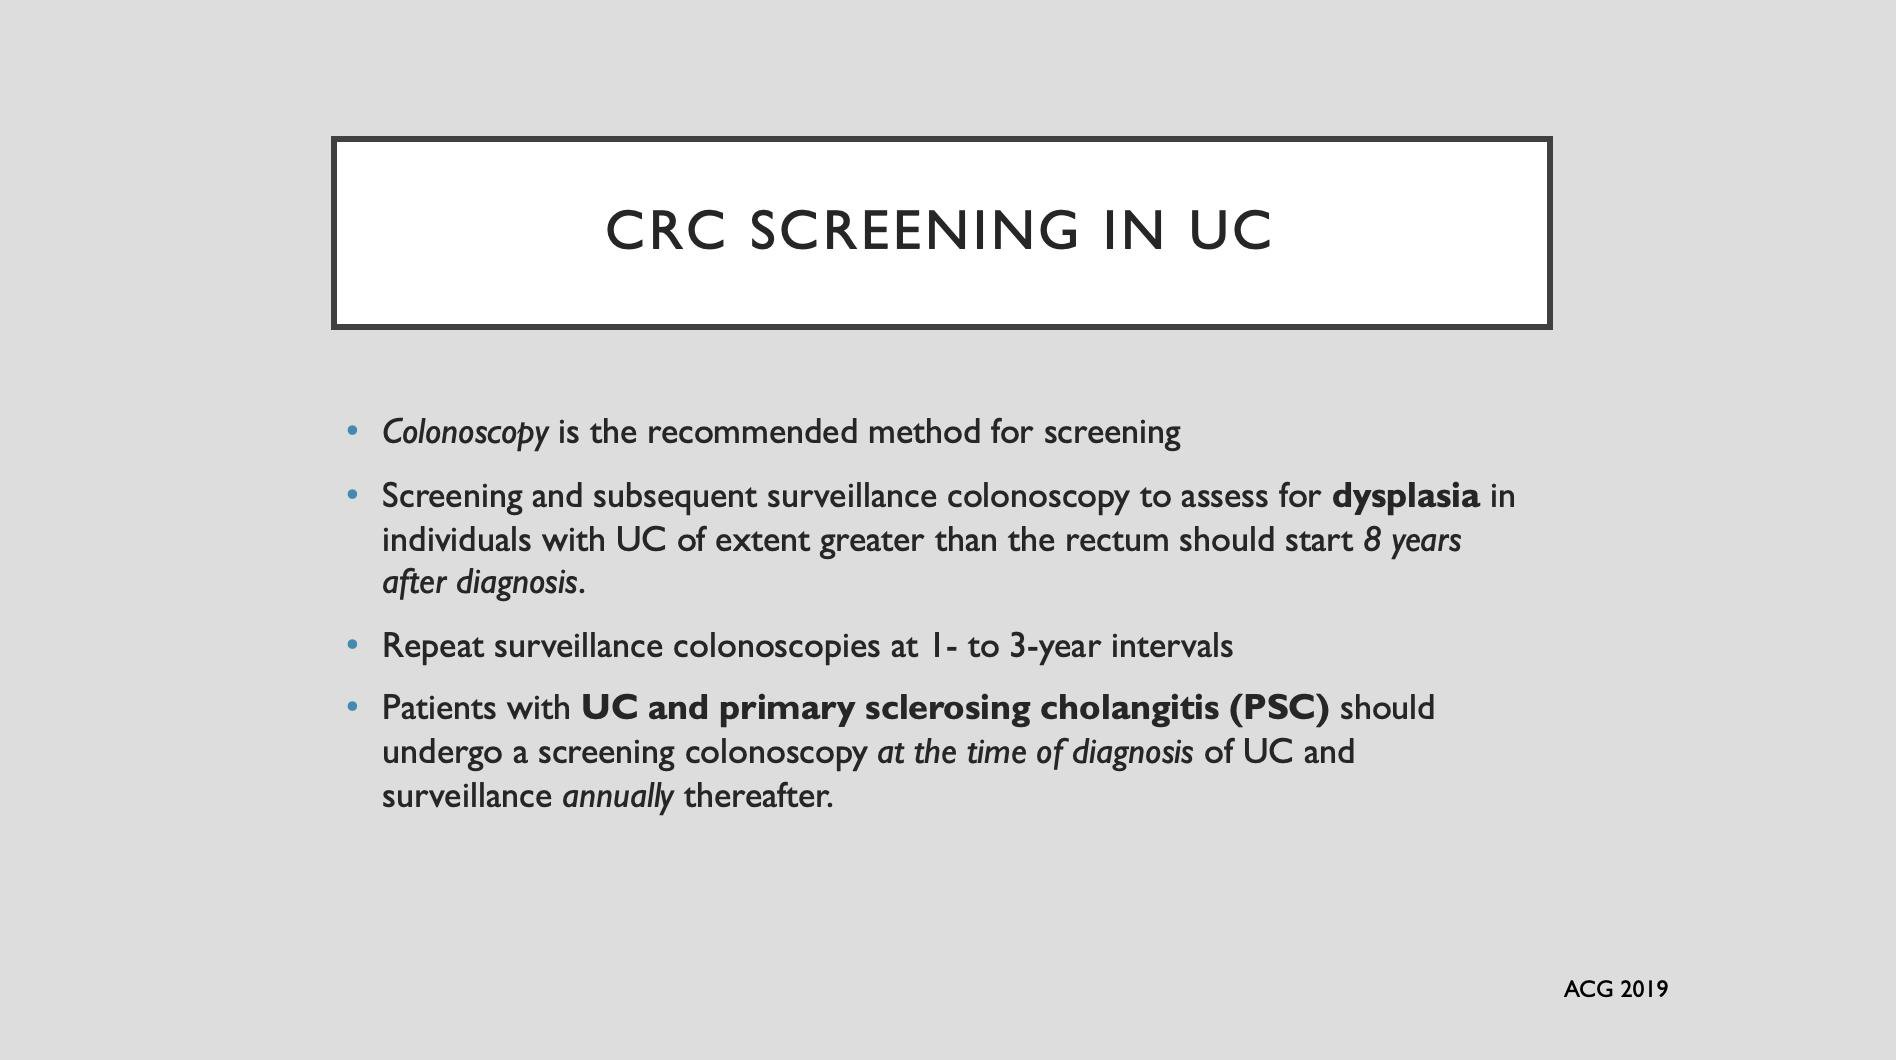 Colorectal Cancer Screening In Ulcerative Colitis Per New Uc Guidelines Colonoscopy Is